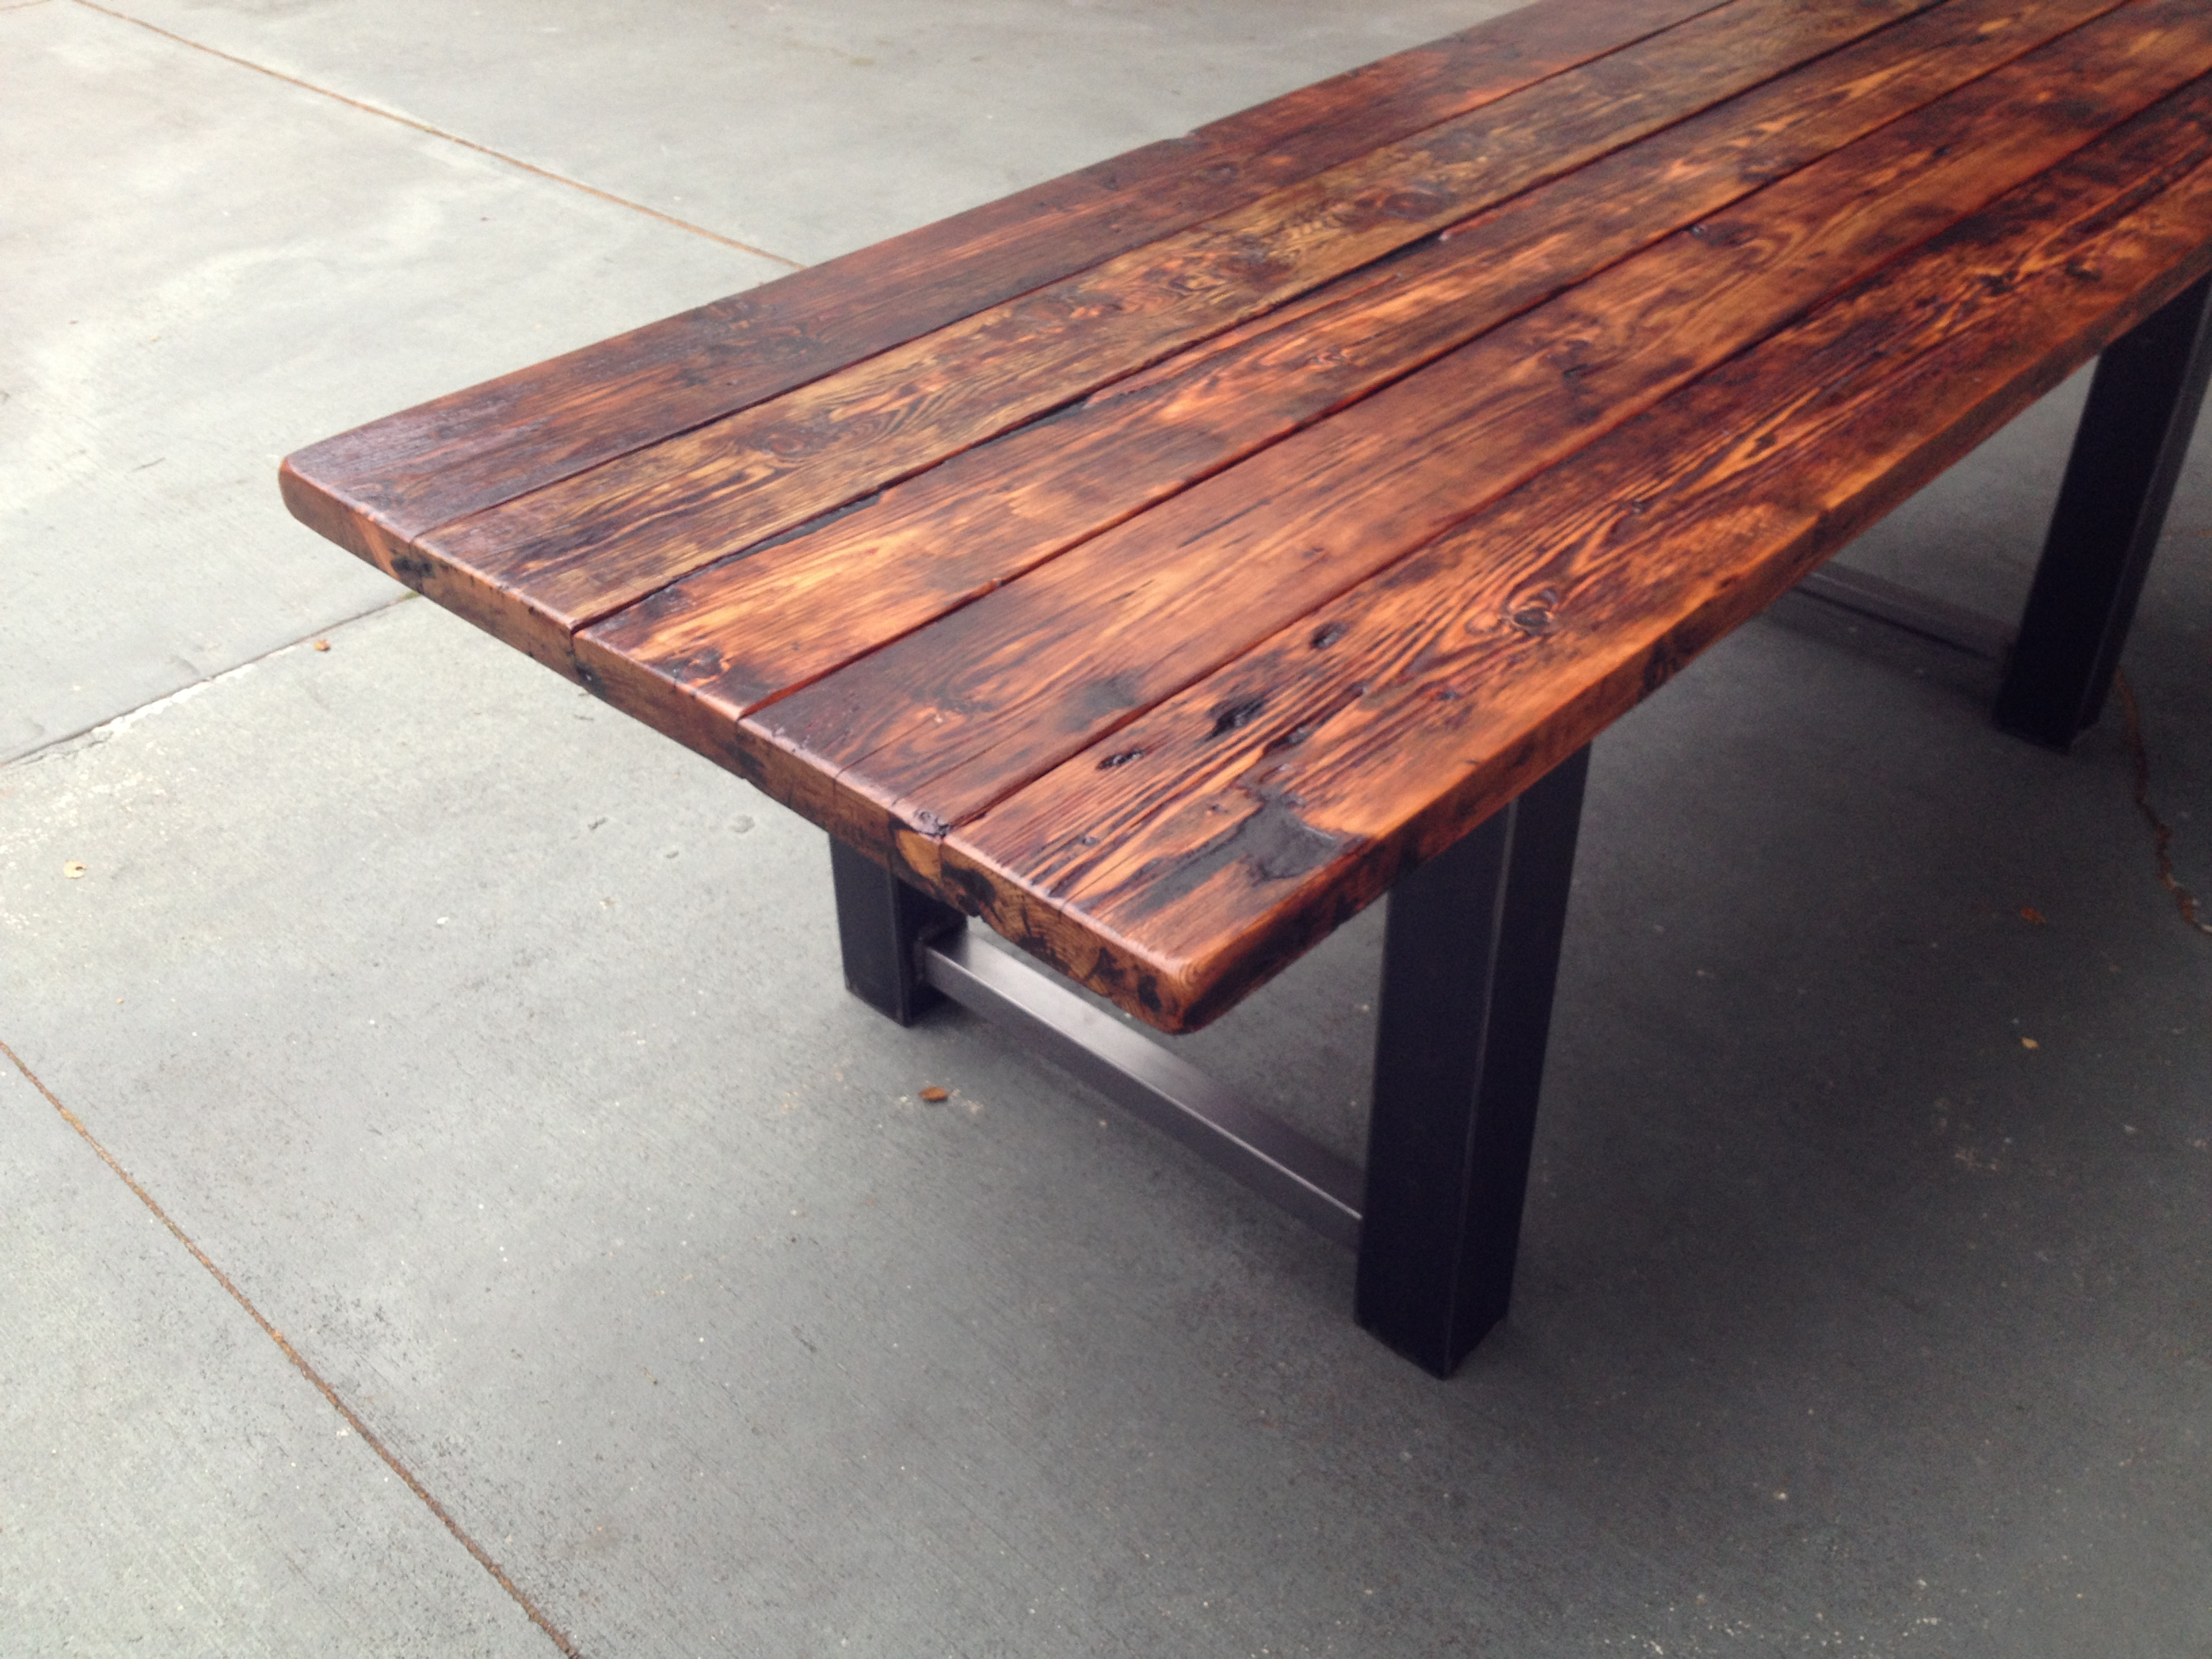 Reclaimed Wood and Steel Dining Table | The Coastal Craftsman